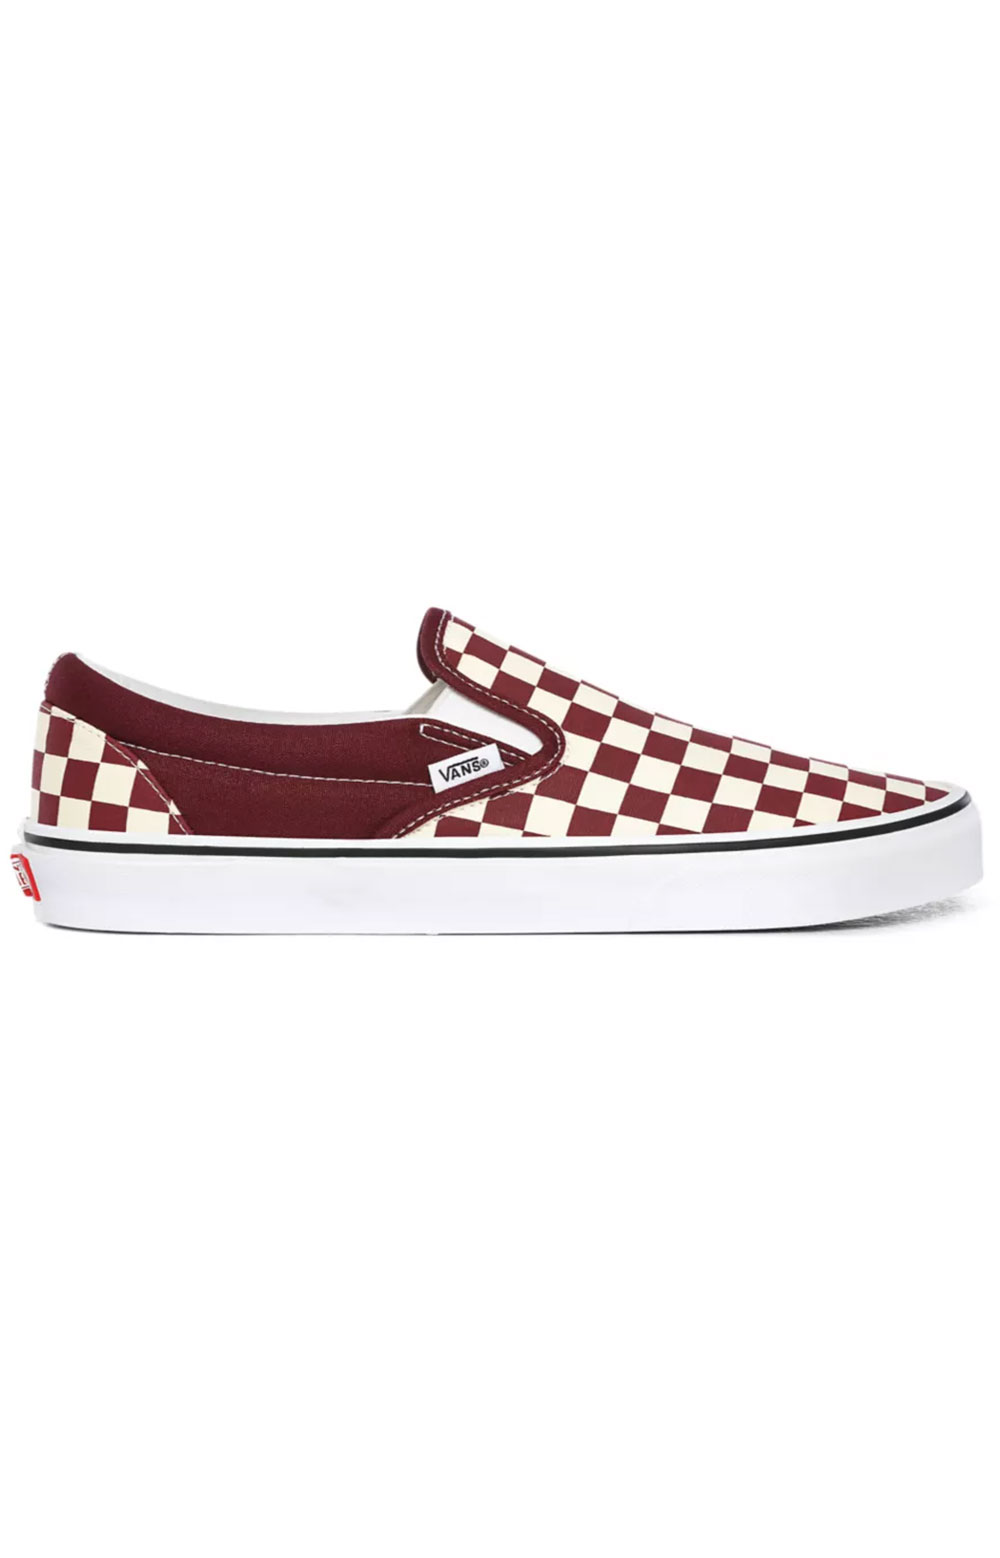 (BV3KZO) Checkerboard Classic Slip-On Shoes- Port Royale/True White